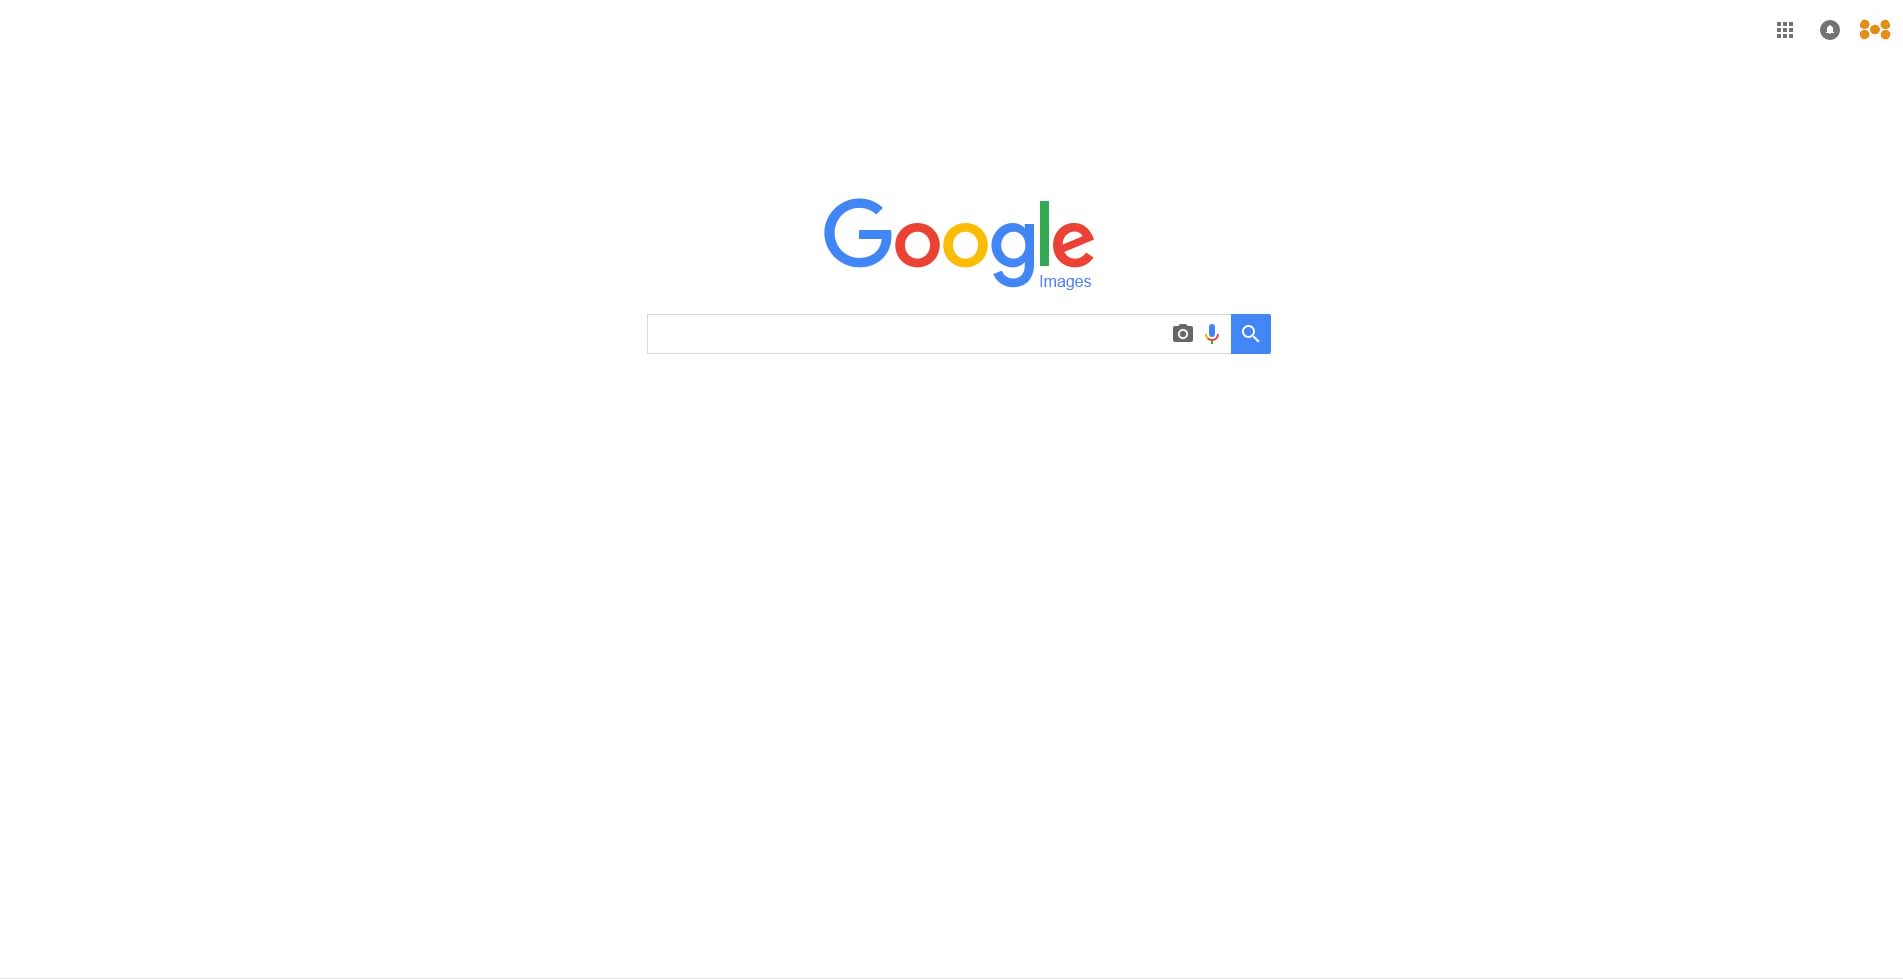 Google image search screen